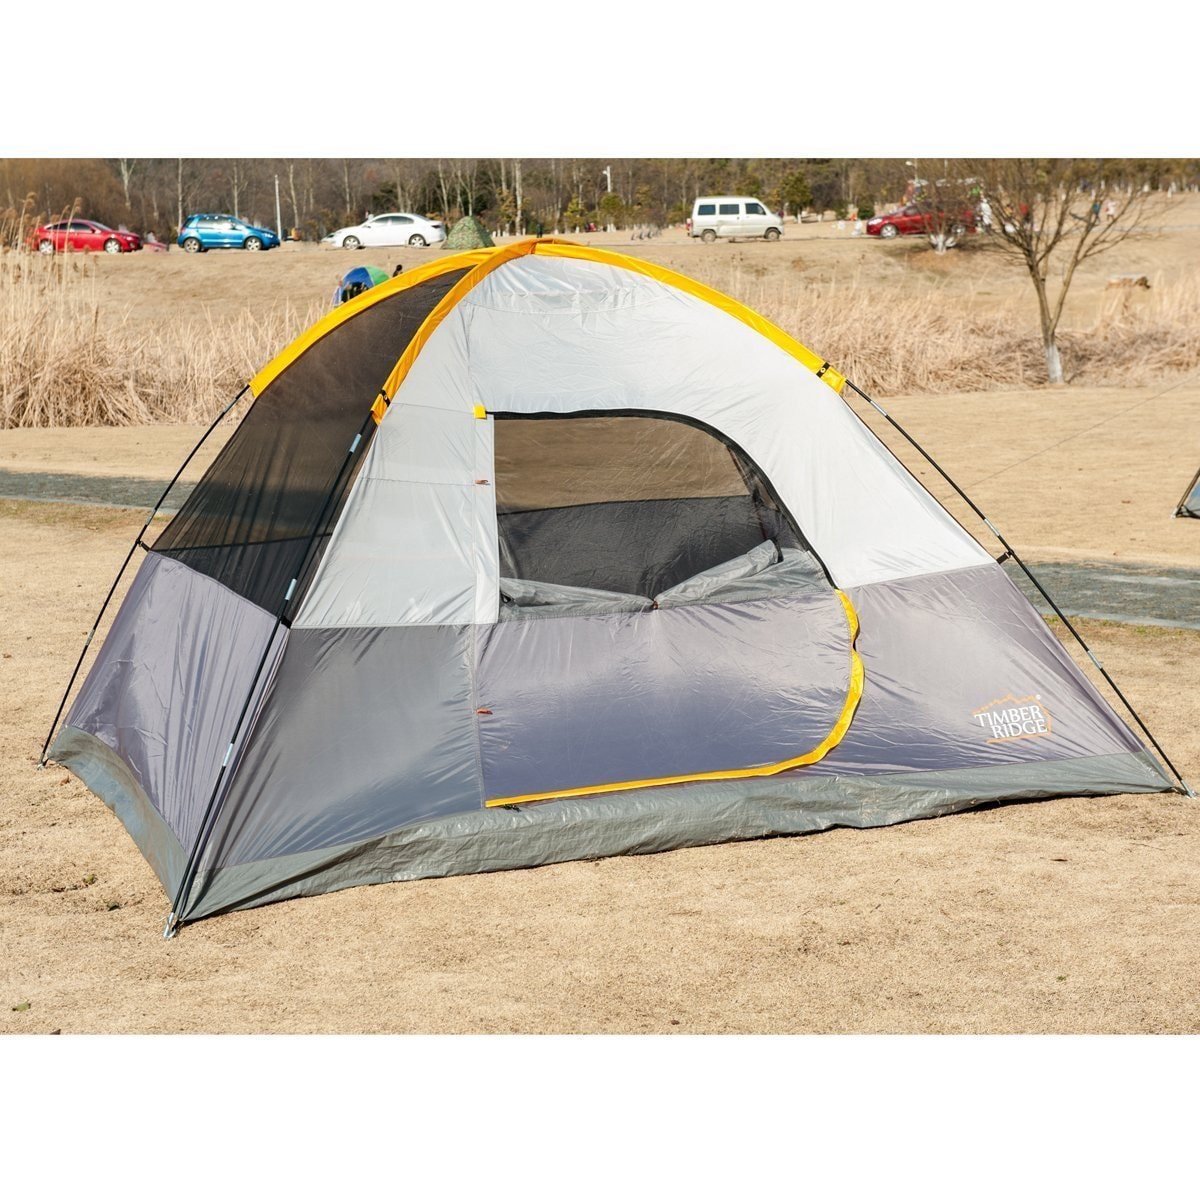 TimberRidge 3 Seasons D-Shape Door Family C&ing Dome Tent with Carry Bag. - Free Shipping Today - Overstock.com - 19147397  sc 1 st  Overstock.com & TimberRidge 3 Seasons D-Shape Door Family Camping Dome Tent with ...